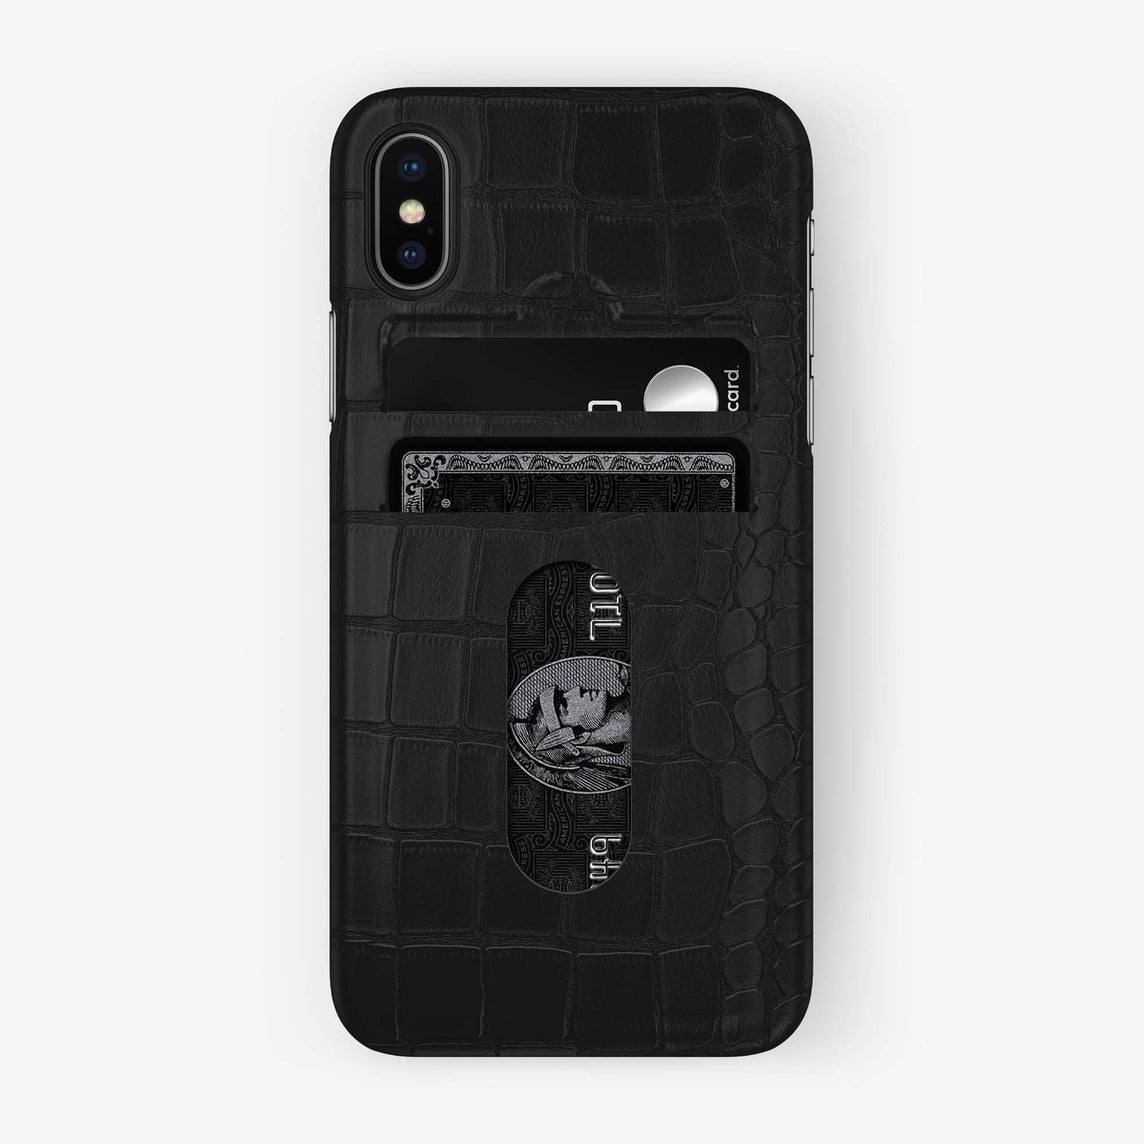 Alligator Card Holder Case iPhone Xs Max | Phantom Black - Black - Hadoro